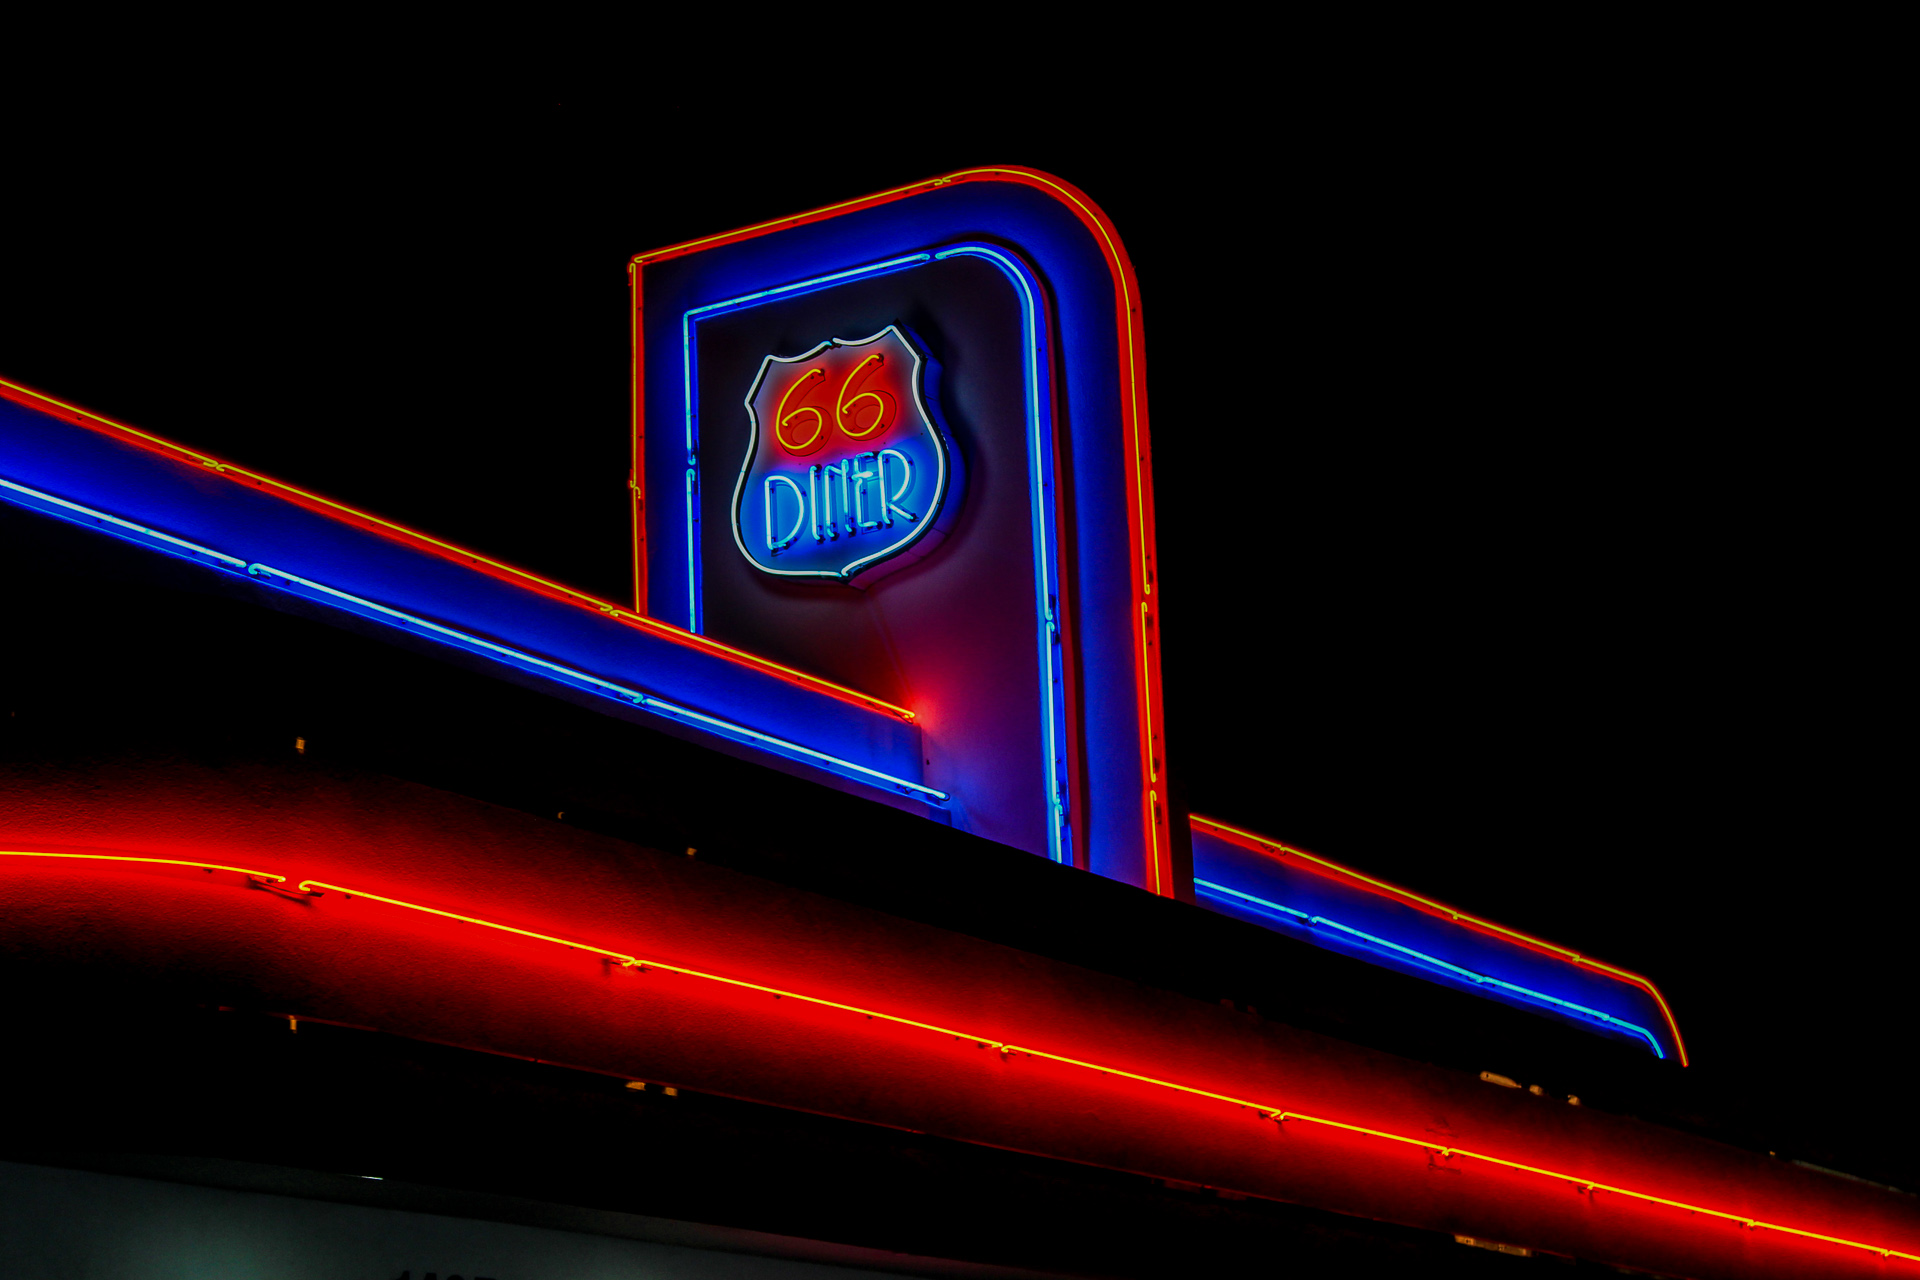 Diner - Digital (Night) - Name Withheld Per Request